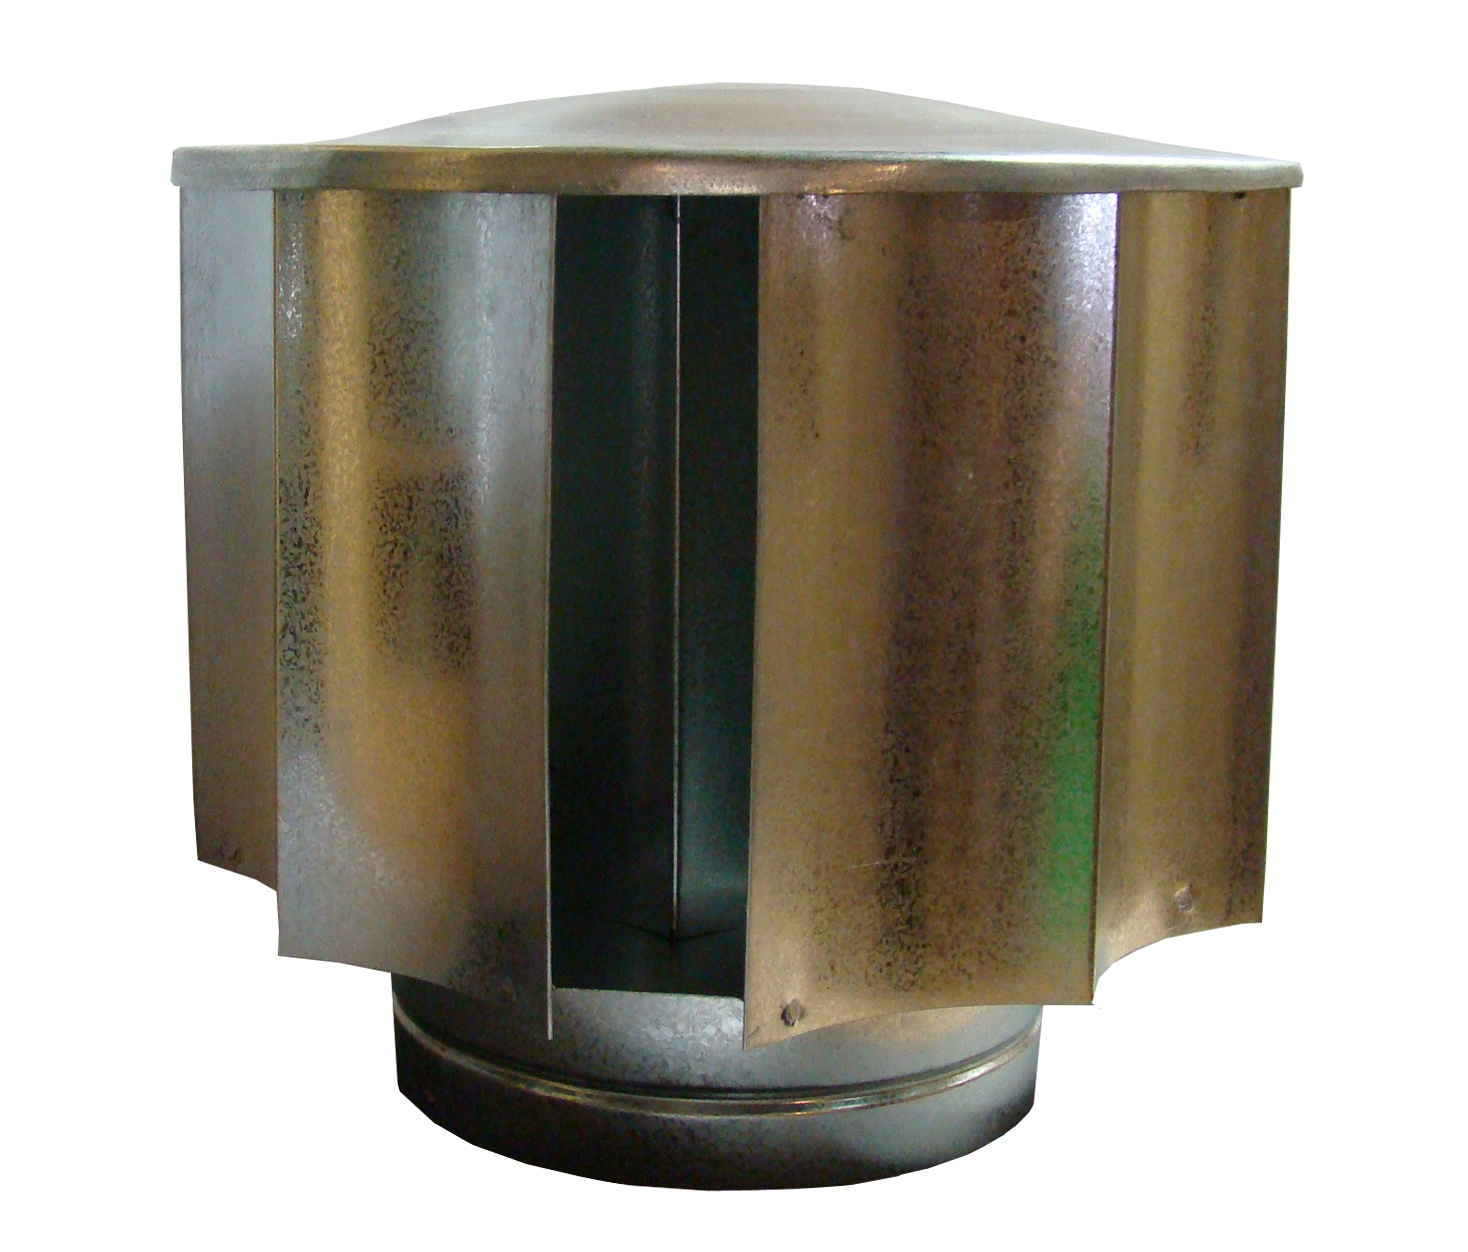 heavy duty wind blocking ventilator cap